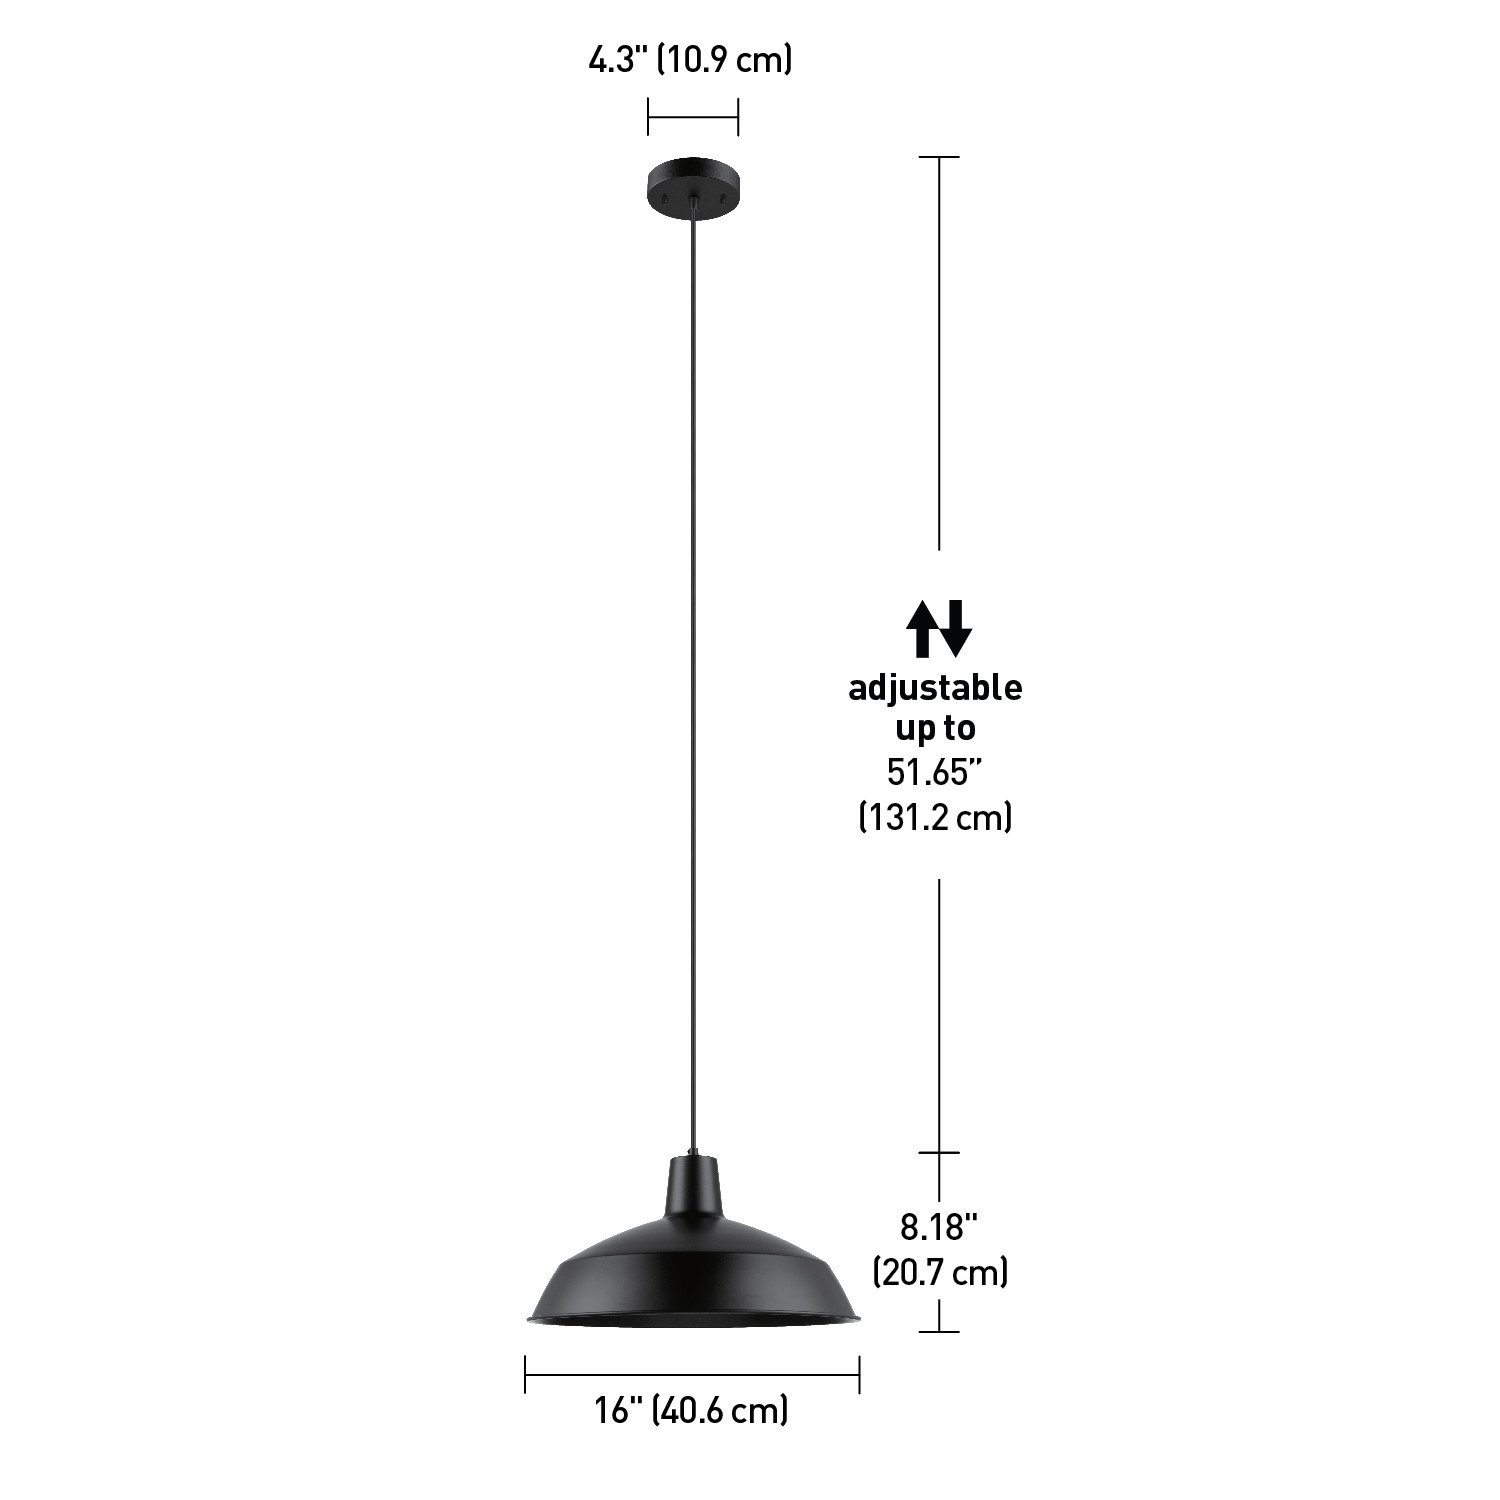 Globe Electric Barnyard 1-Light 16'' Industrial Warehouse Pendant, Matte Black Finish, 65155 by Globe Electric (Image #6)